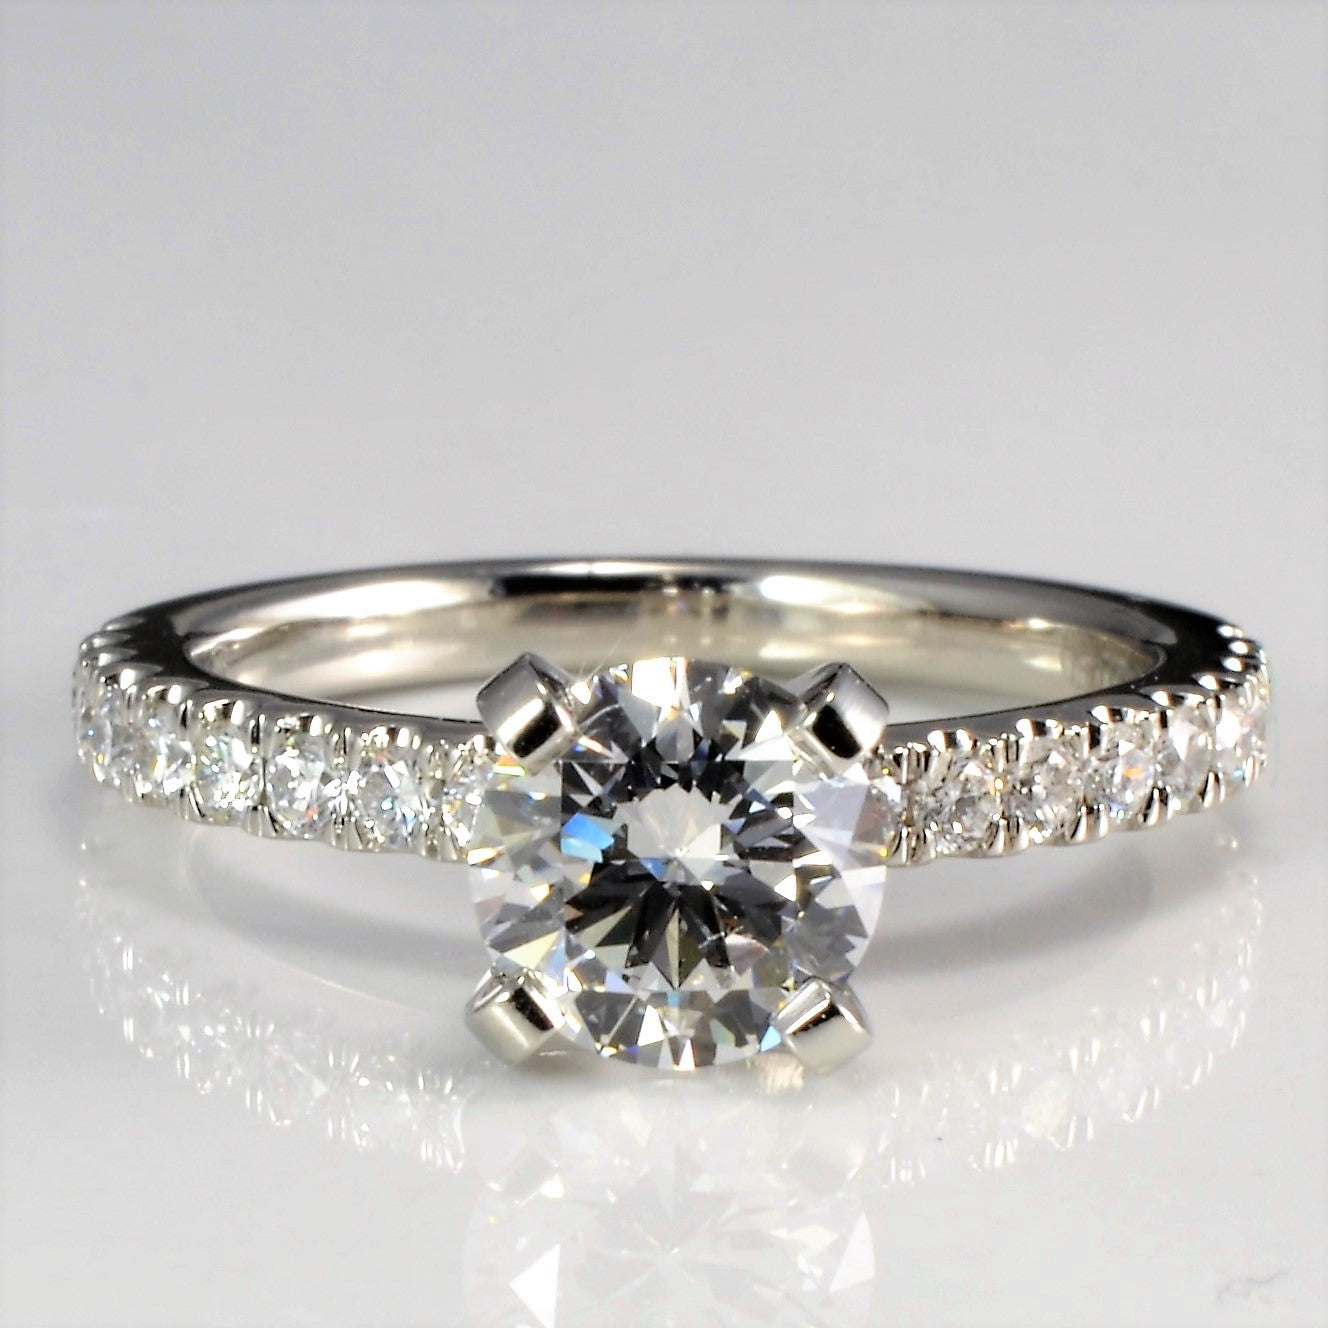 Solitaire with Pave Accents Diamond Engagement Ring | 0.94 ctw, SZ 3.5 |